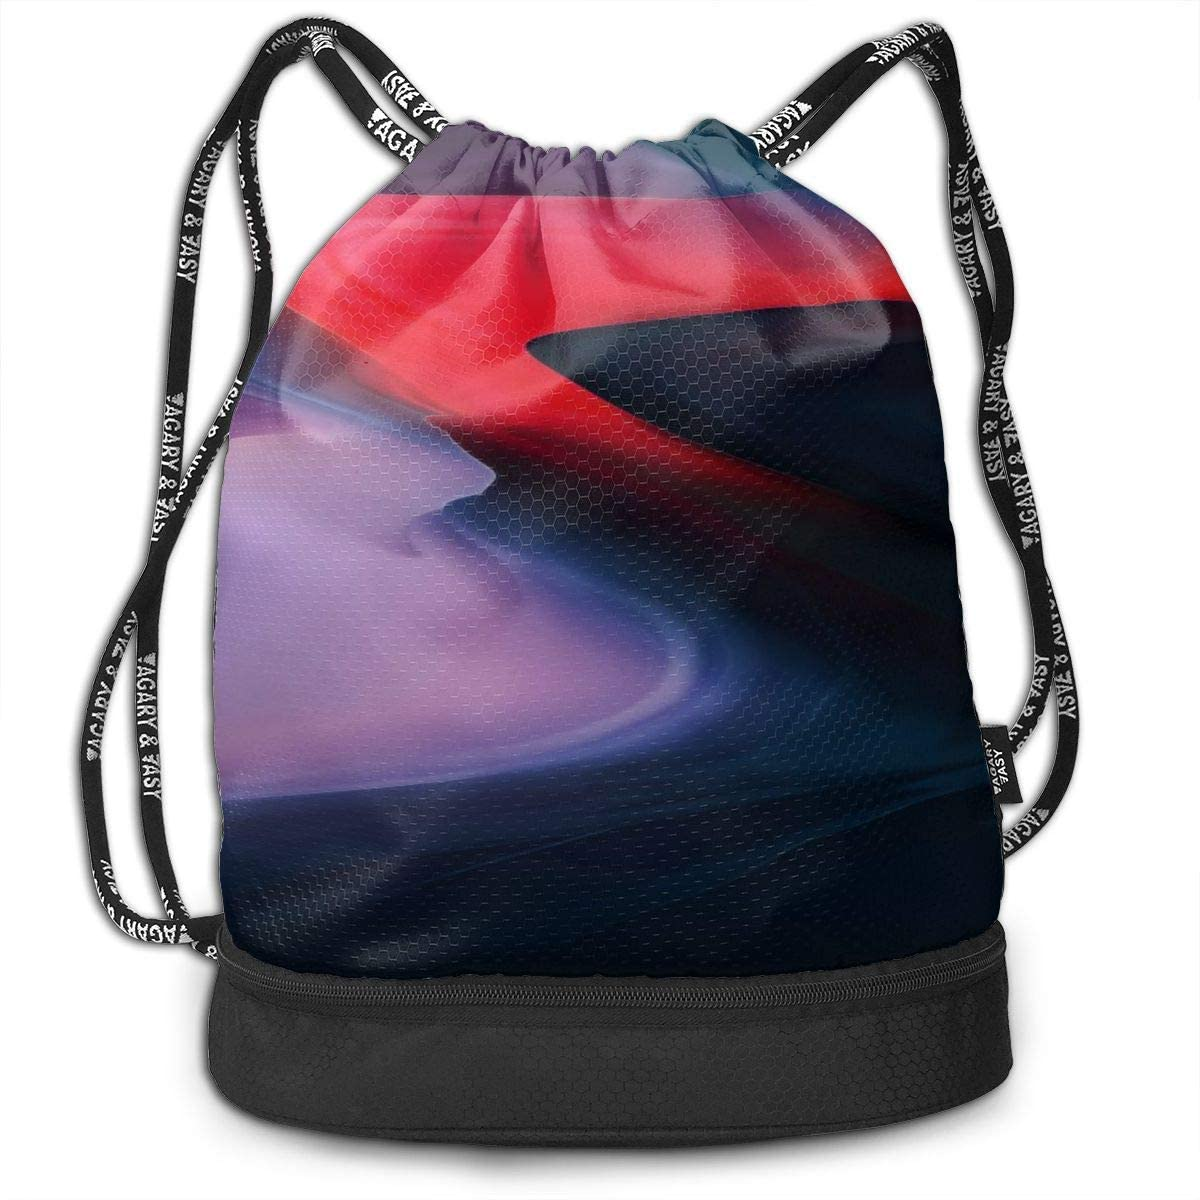 Drawstring Backpack Bag Sport Gym Sackpack With Colorful Abstract Design (50) Printing